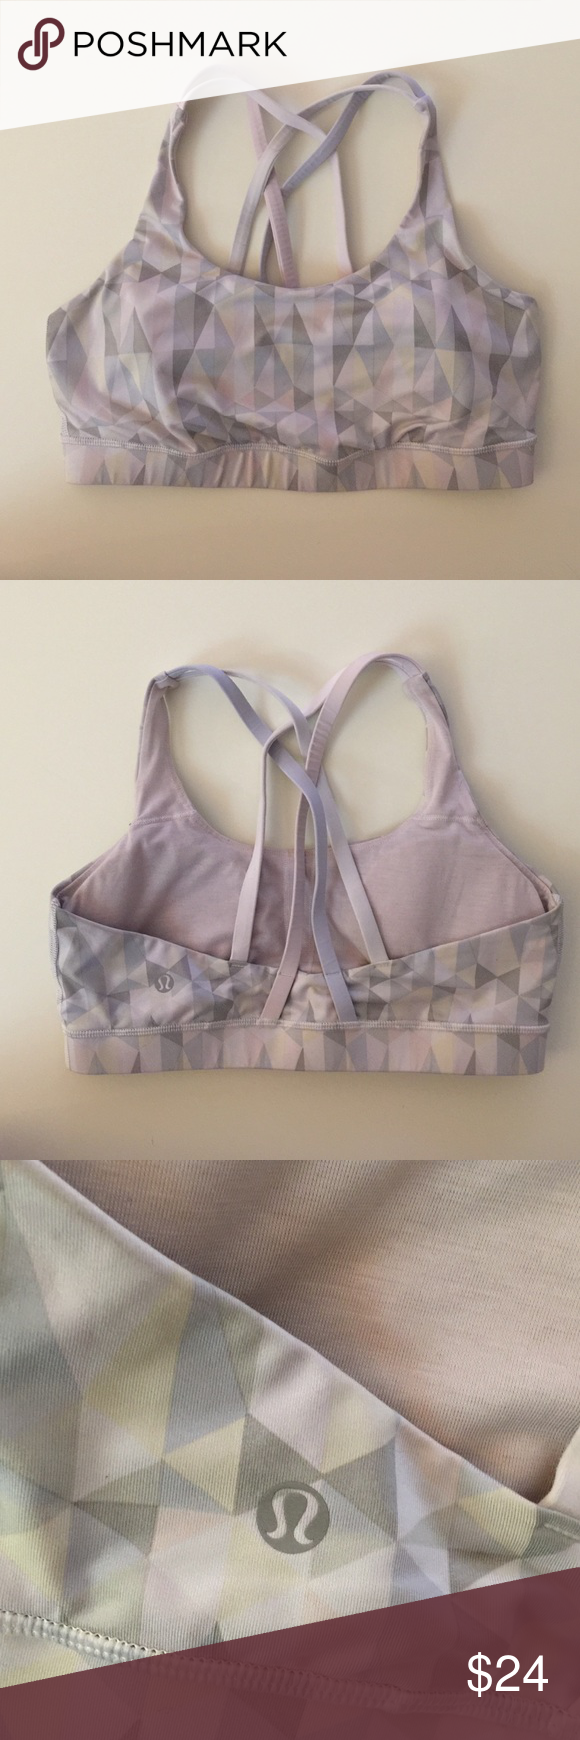 Lululemon Energy bra Well loved but with a lot of life left. Size 8. White with geometric pattern. Includes removable pad inserts. lululemon athletica Tops